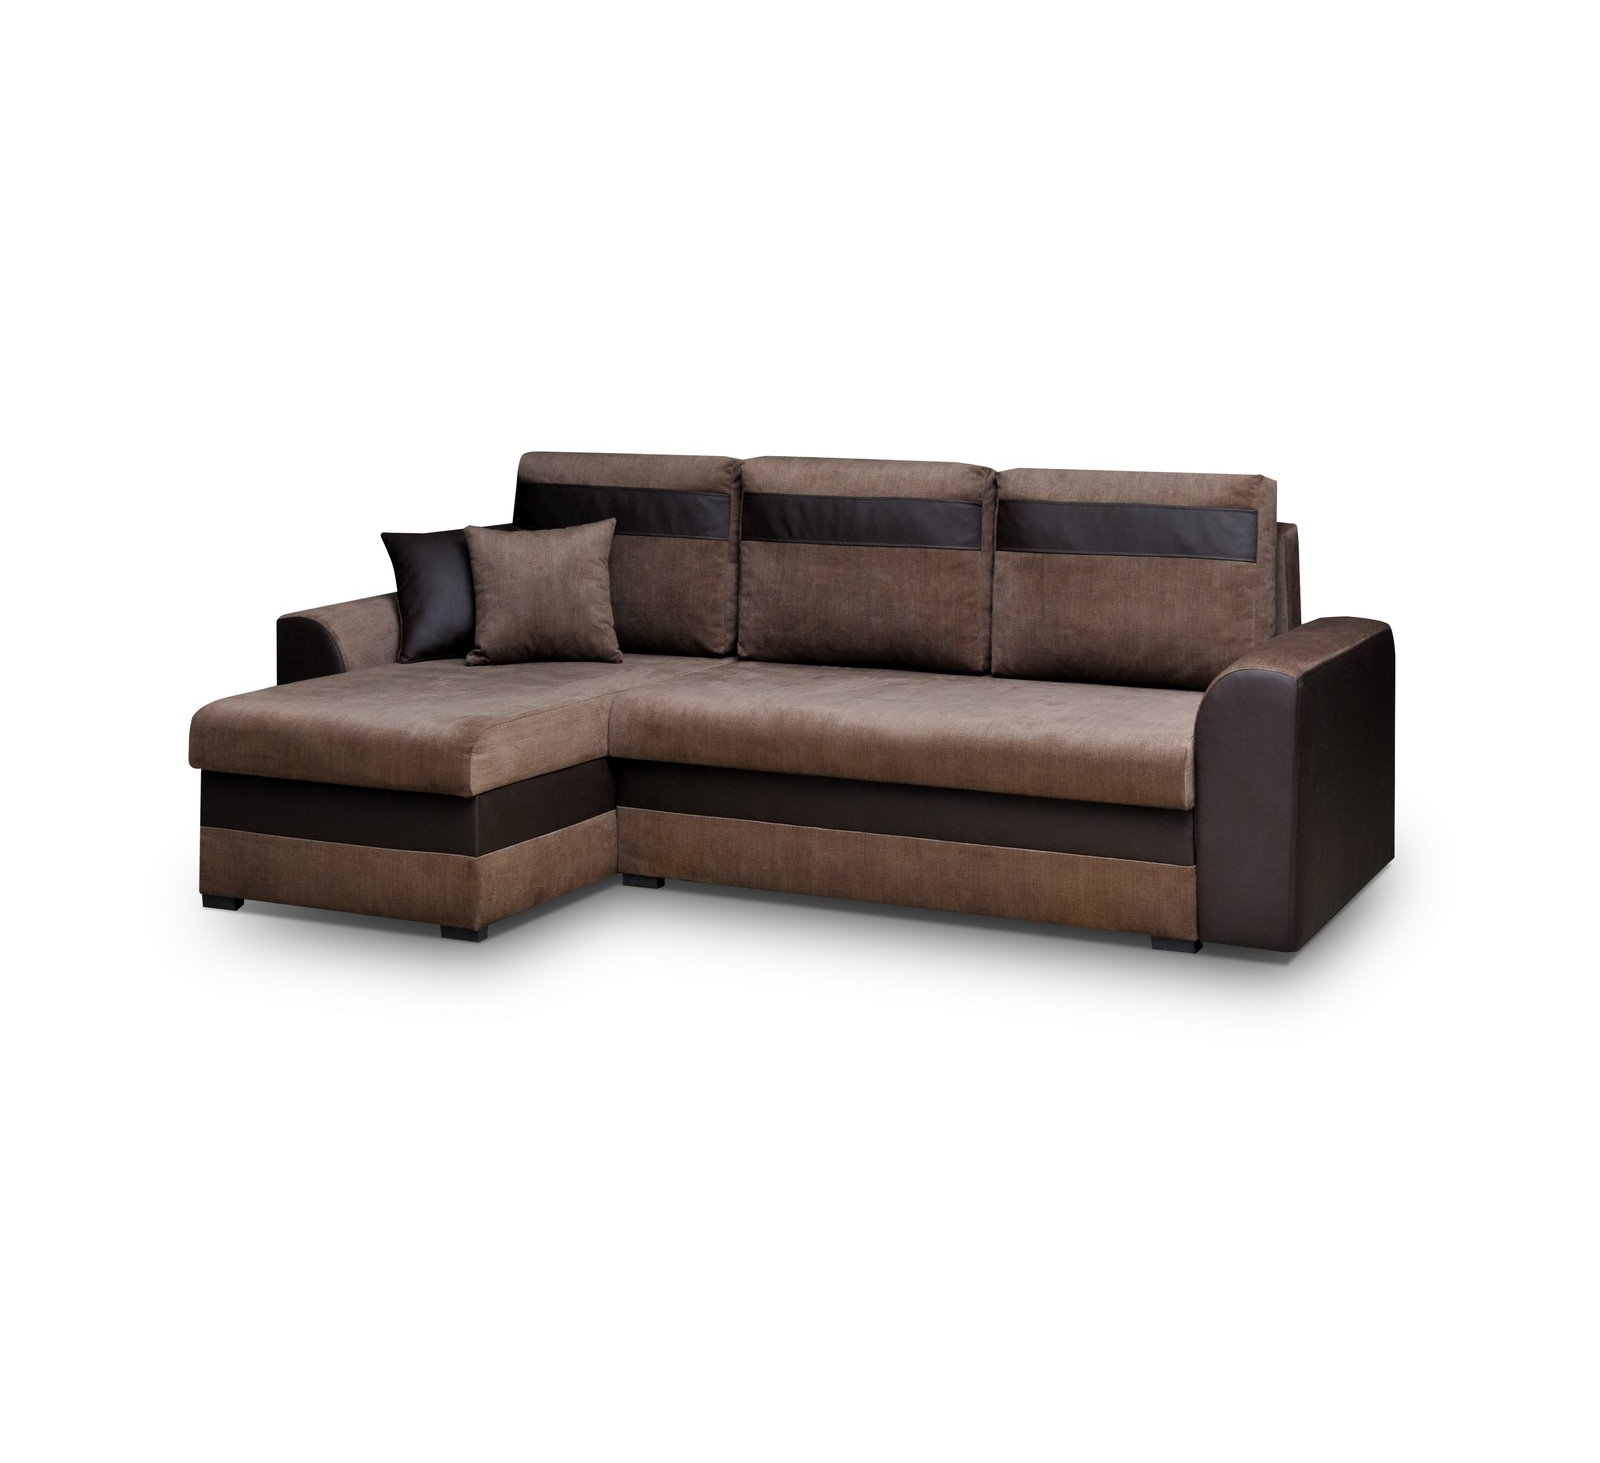 ecksofa eckcouch couch mit schlaffunktion und zwei bettkasten l form tommy braun ebay. Black Bedroom Furniture Sets. Home Design Ideas